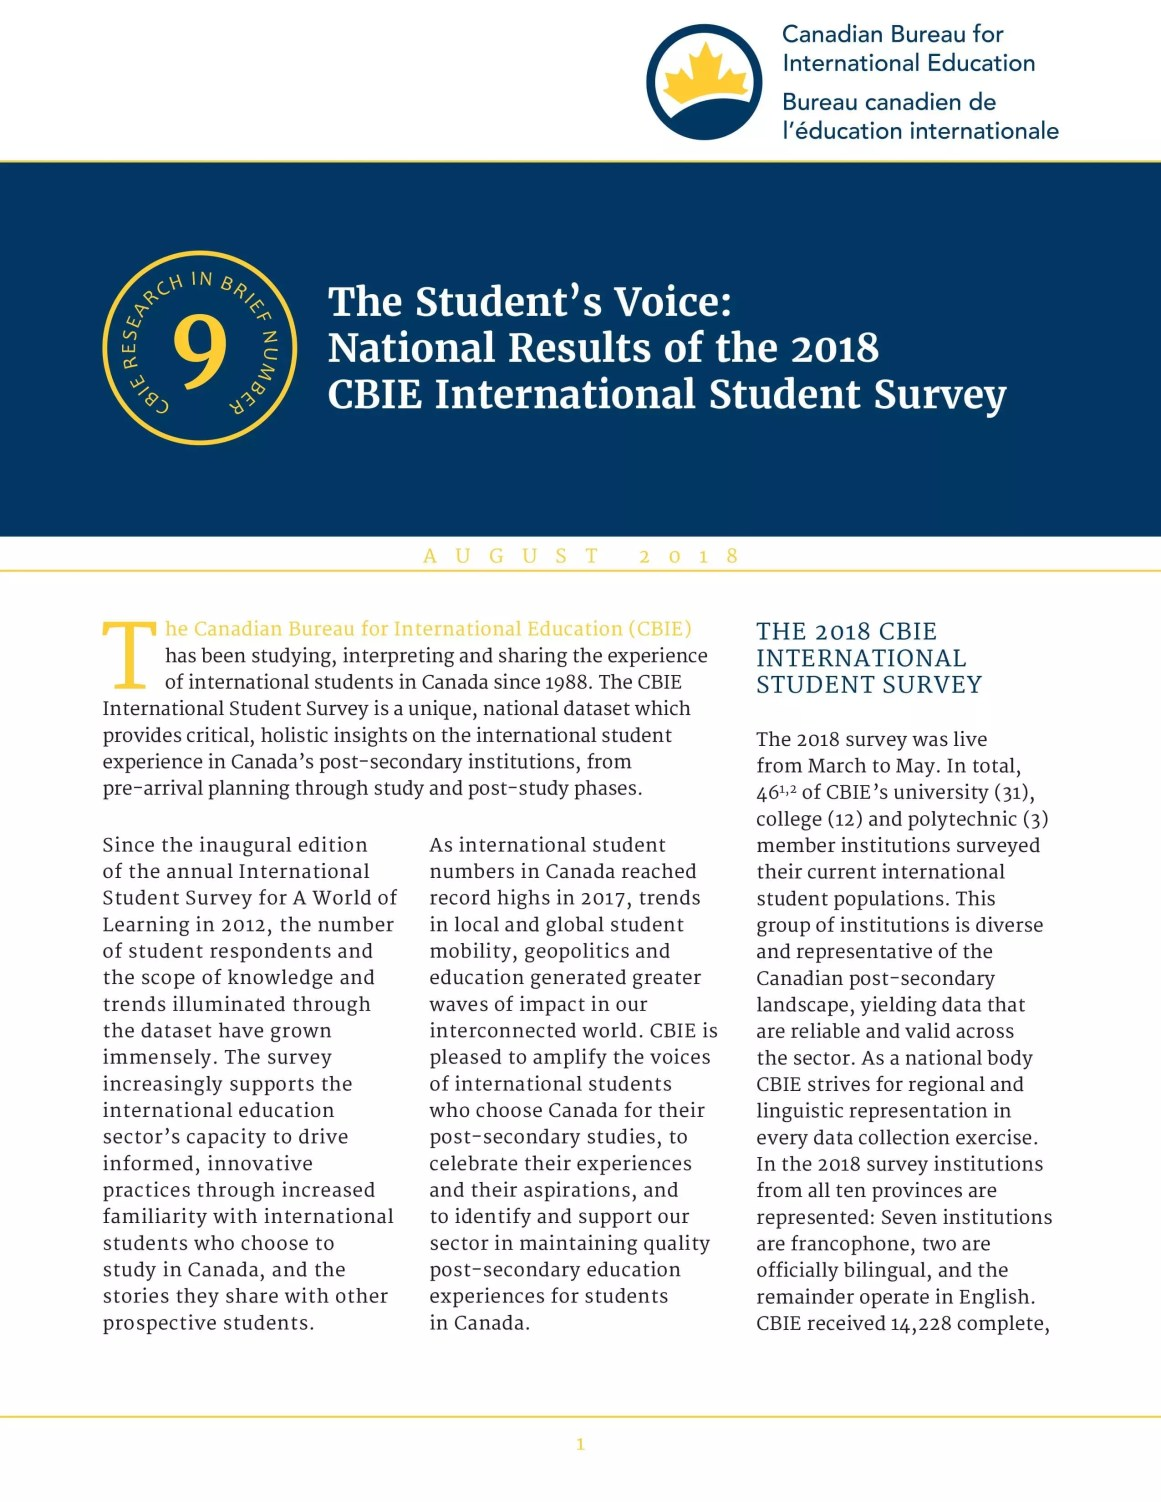 The Student's Voice: National Results of the 2018 CBIE International Student Survey